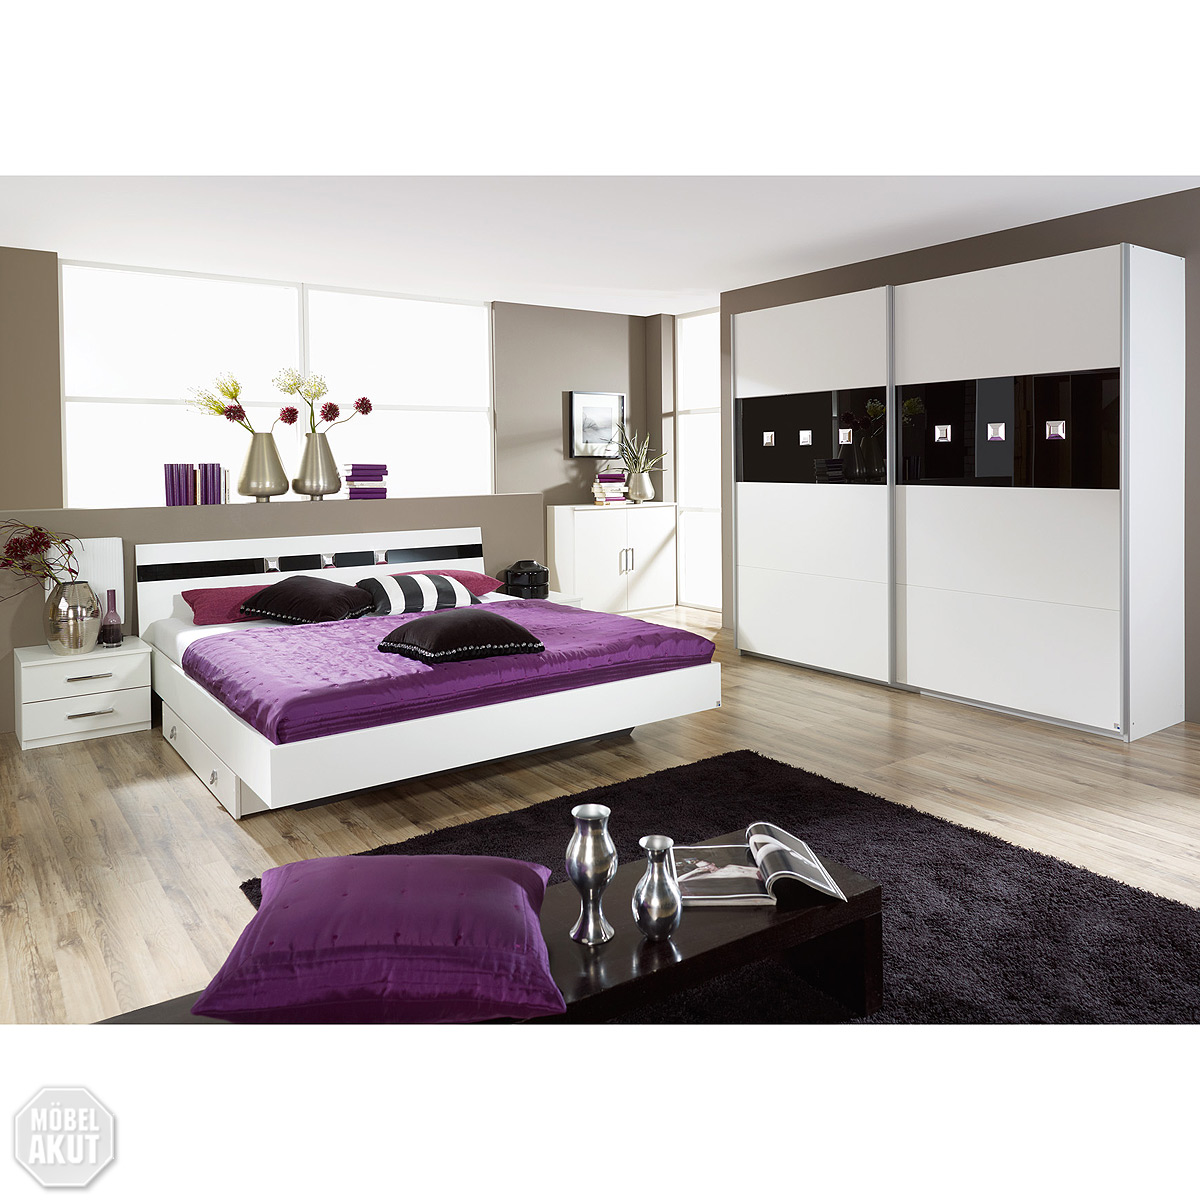 schlafzimmer set tours bett nachtkommode schrank wei schwarz glas strass ebay. Black Bedroom Furniture Sets. Home Design Ideas